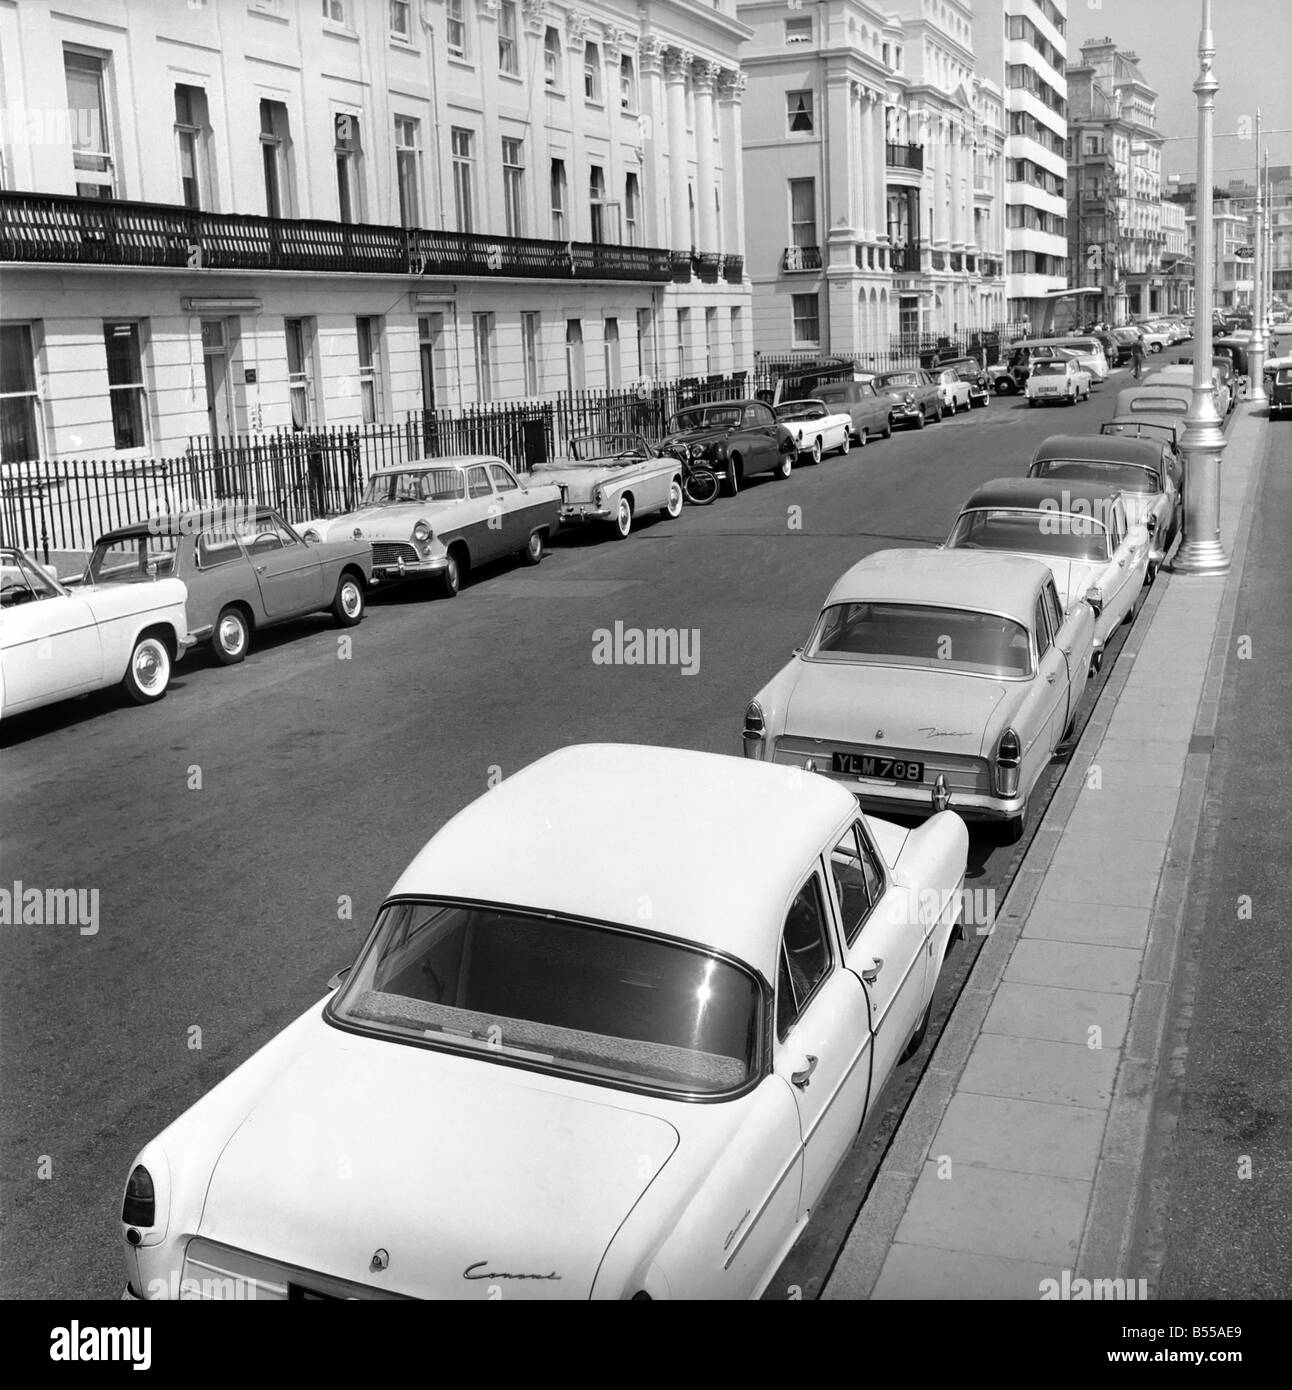 traffic parked cars street scene june 1960 m4336 003 stock photo royalty free image 20401649